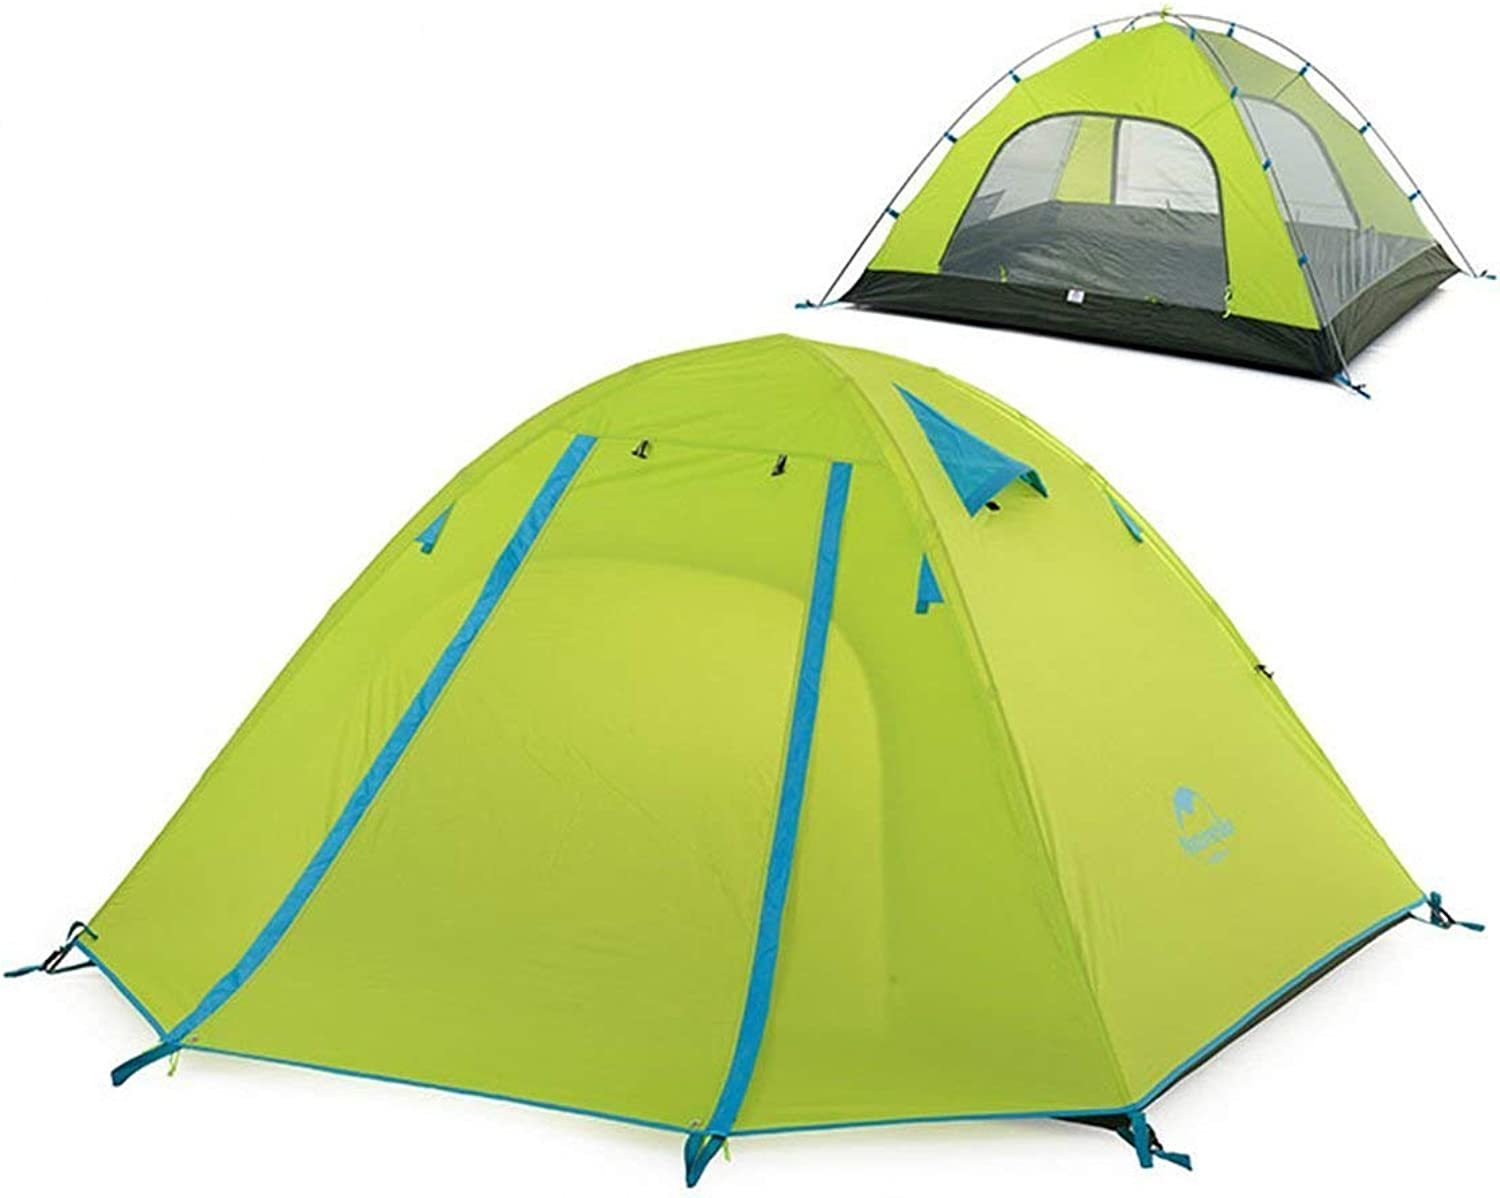 Azarxis 2 3 4 Person Backpacking Tent 3 Season Lightweight Waterproof Double Layer Two Doors Aluminum Rod Camping Tent for Hiking Traveling (Green 23 Person)